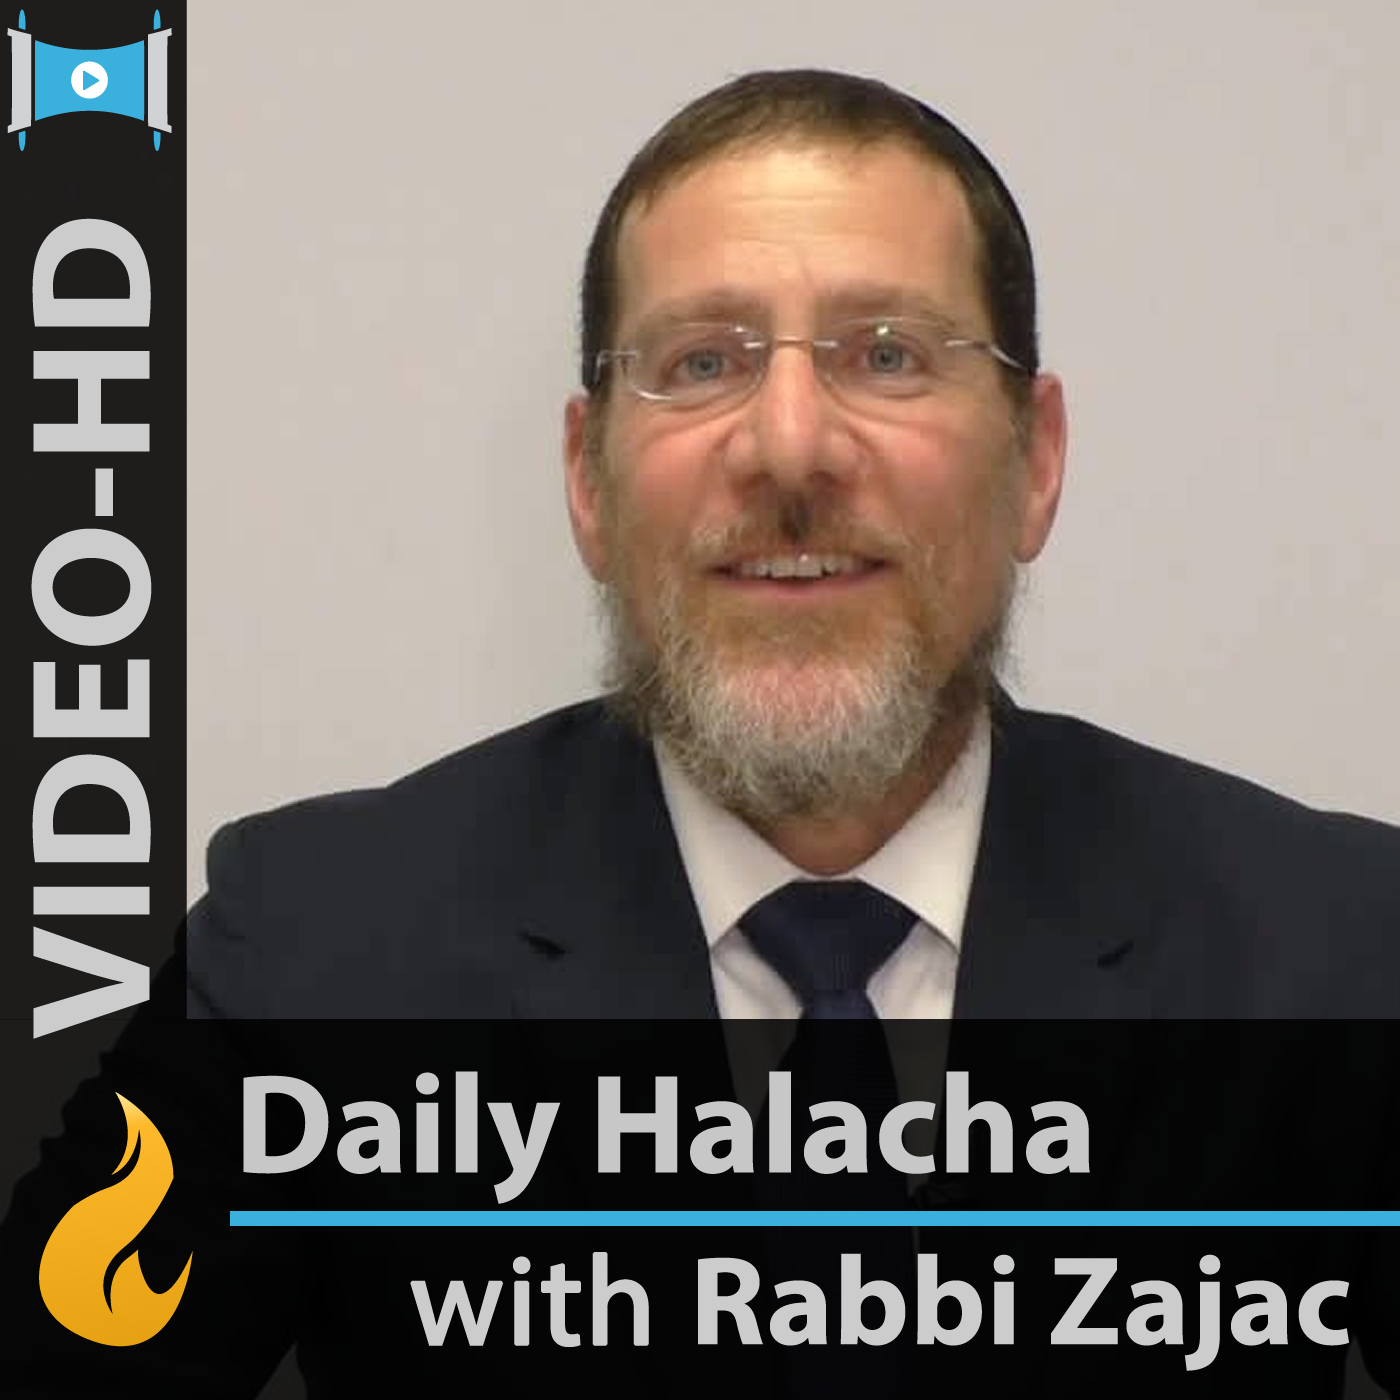 Daily Halachah (Video-HD)